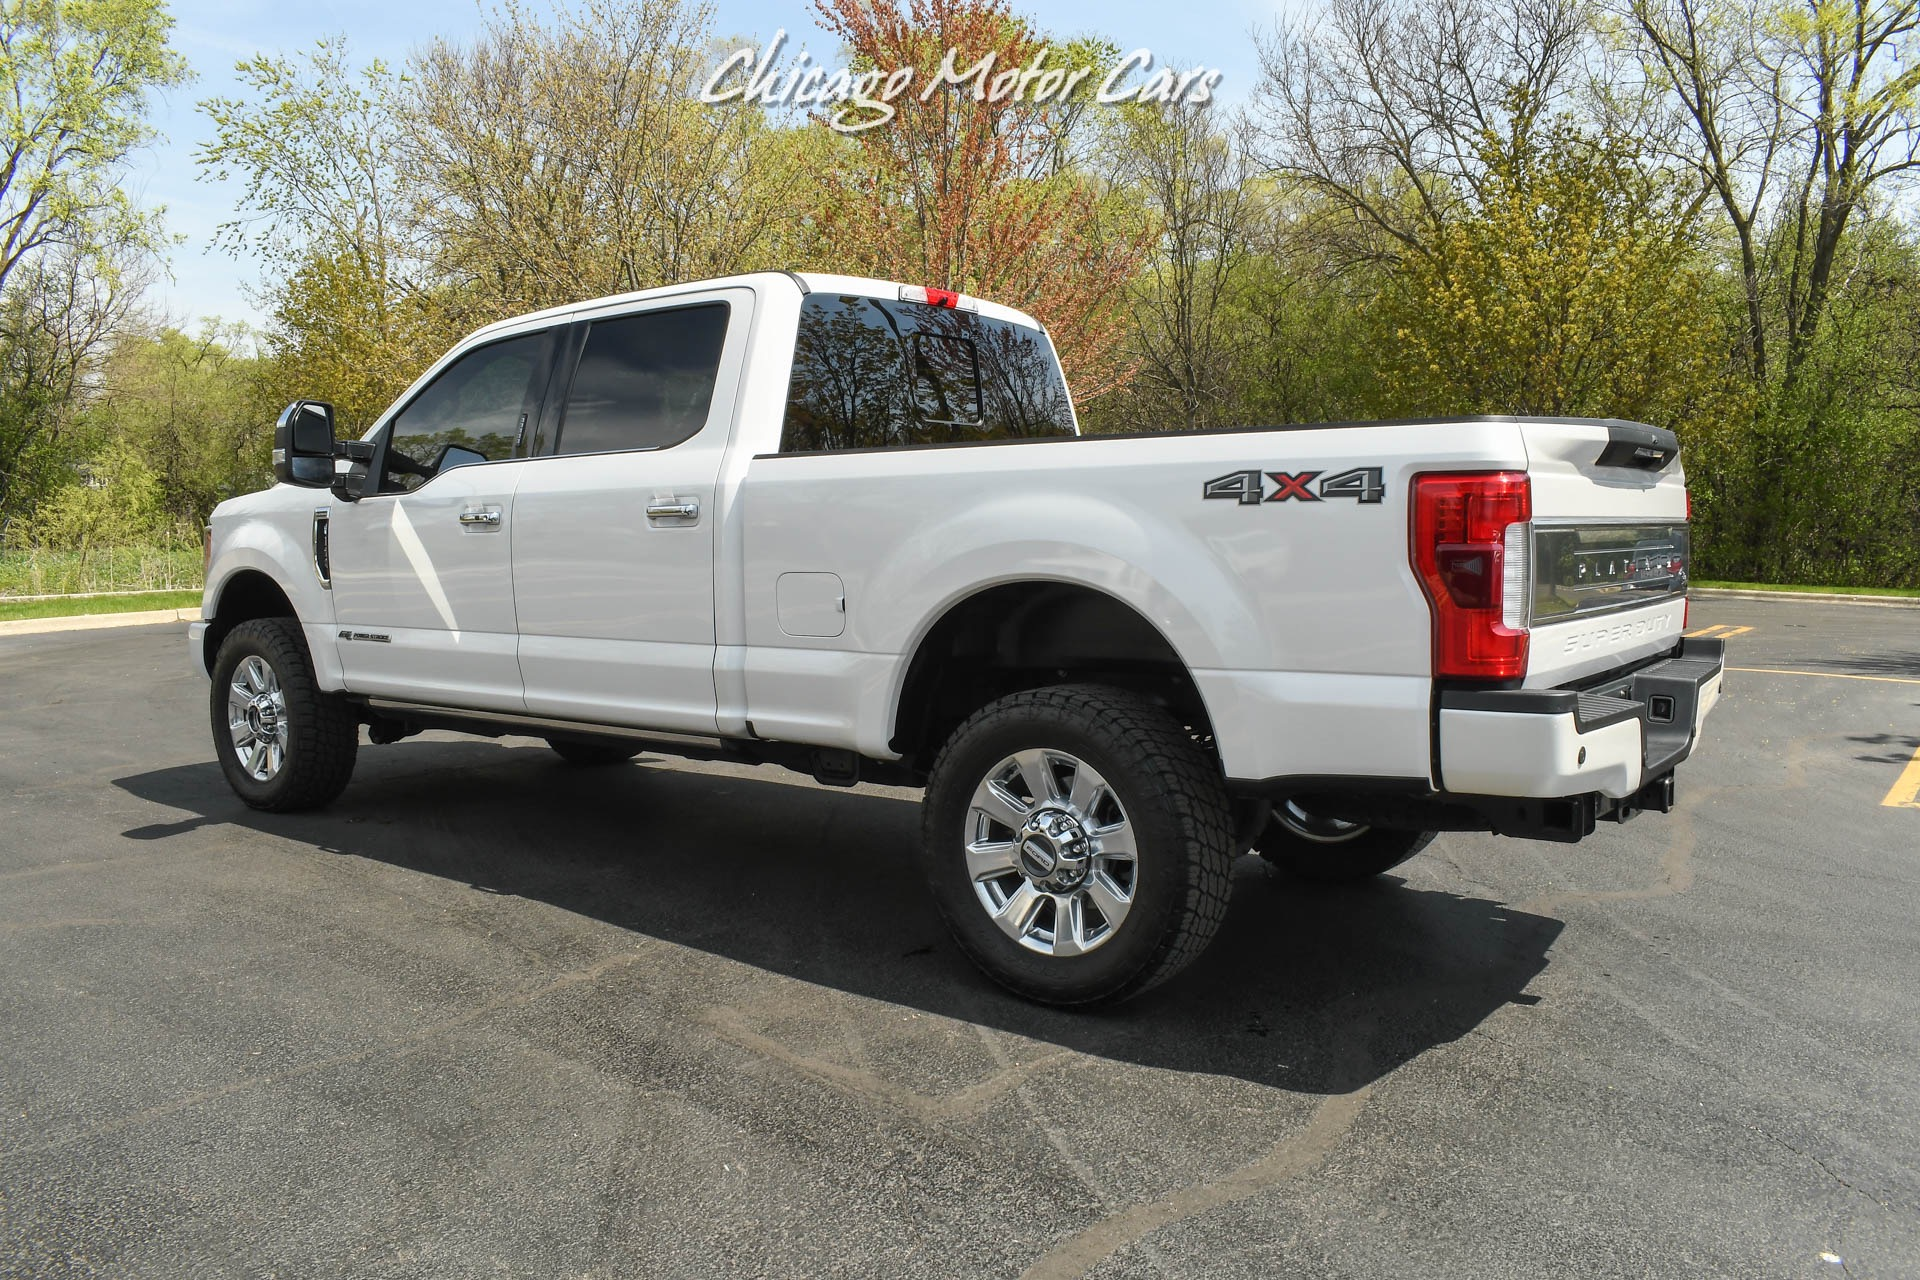 Used-2018-Ford-F-350-Super-Duty-Platinum-4X4-Platinum-Ultimate-Package-67L-Power-Stroke-V8-Diesel-Engine